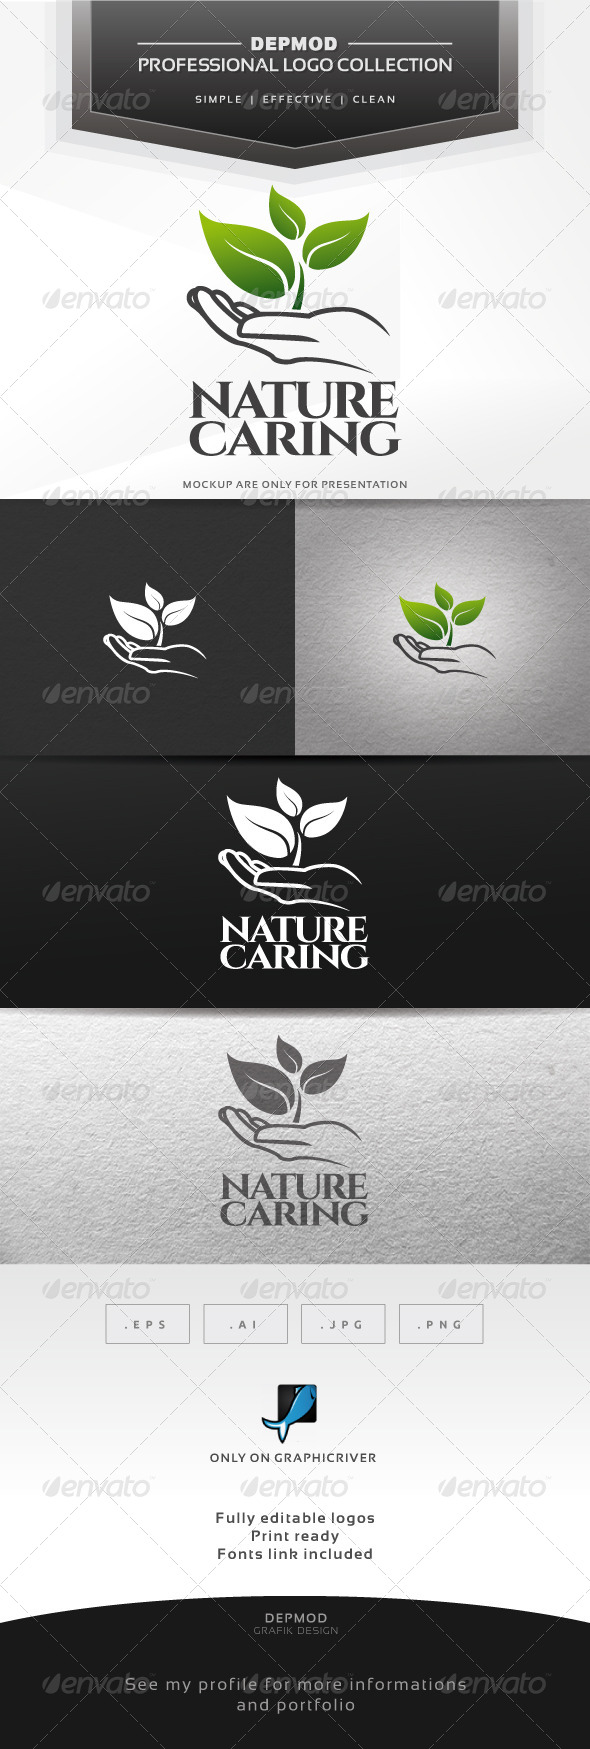 Nature Caring Logo - Nature Logo Templates